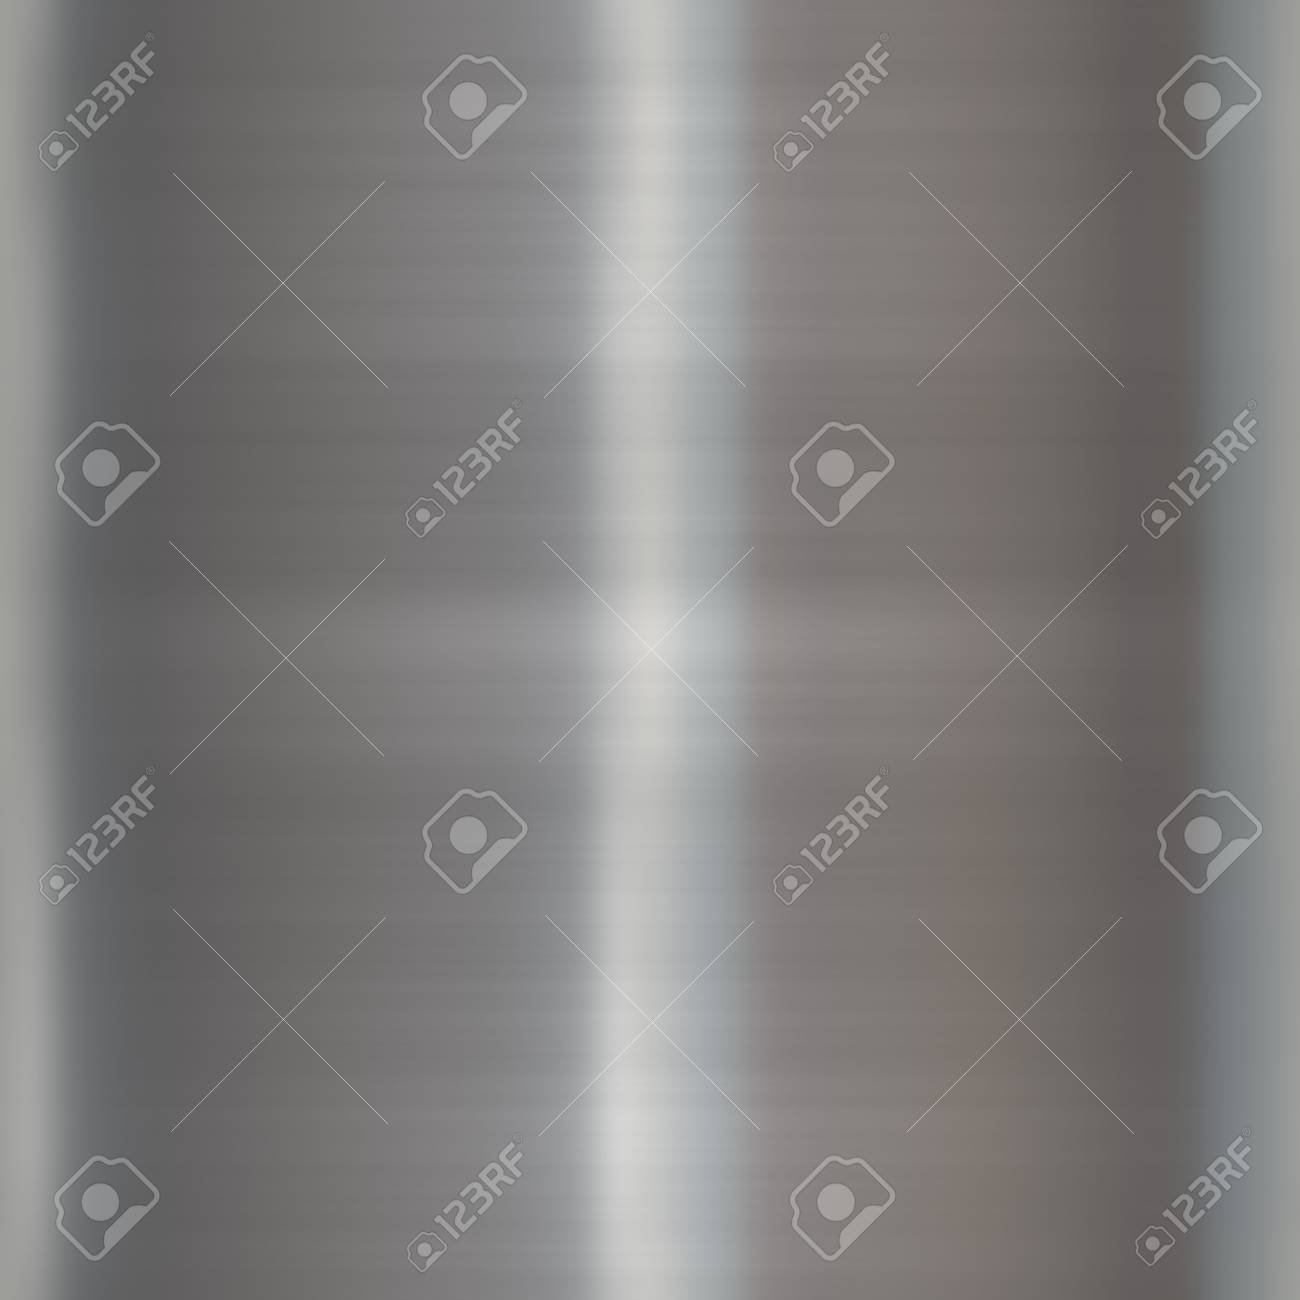 Brushed smooth glossy metal surface texture background illustration Stock Illustration - 3271946